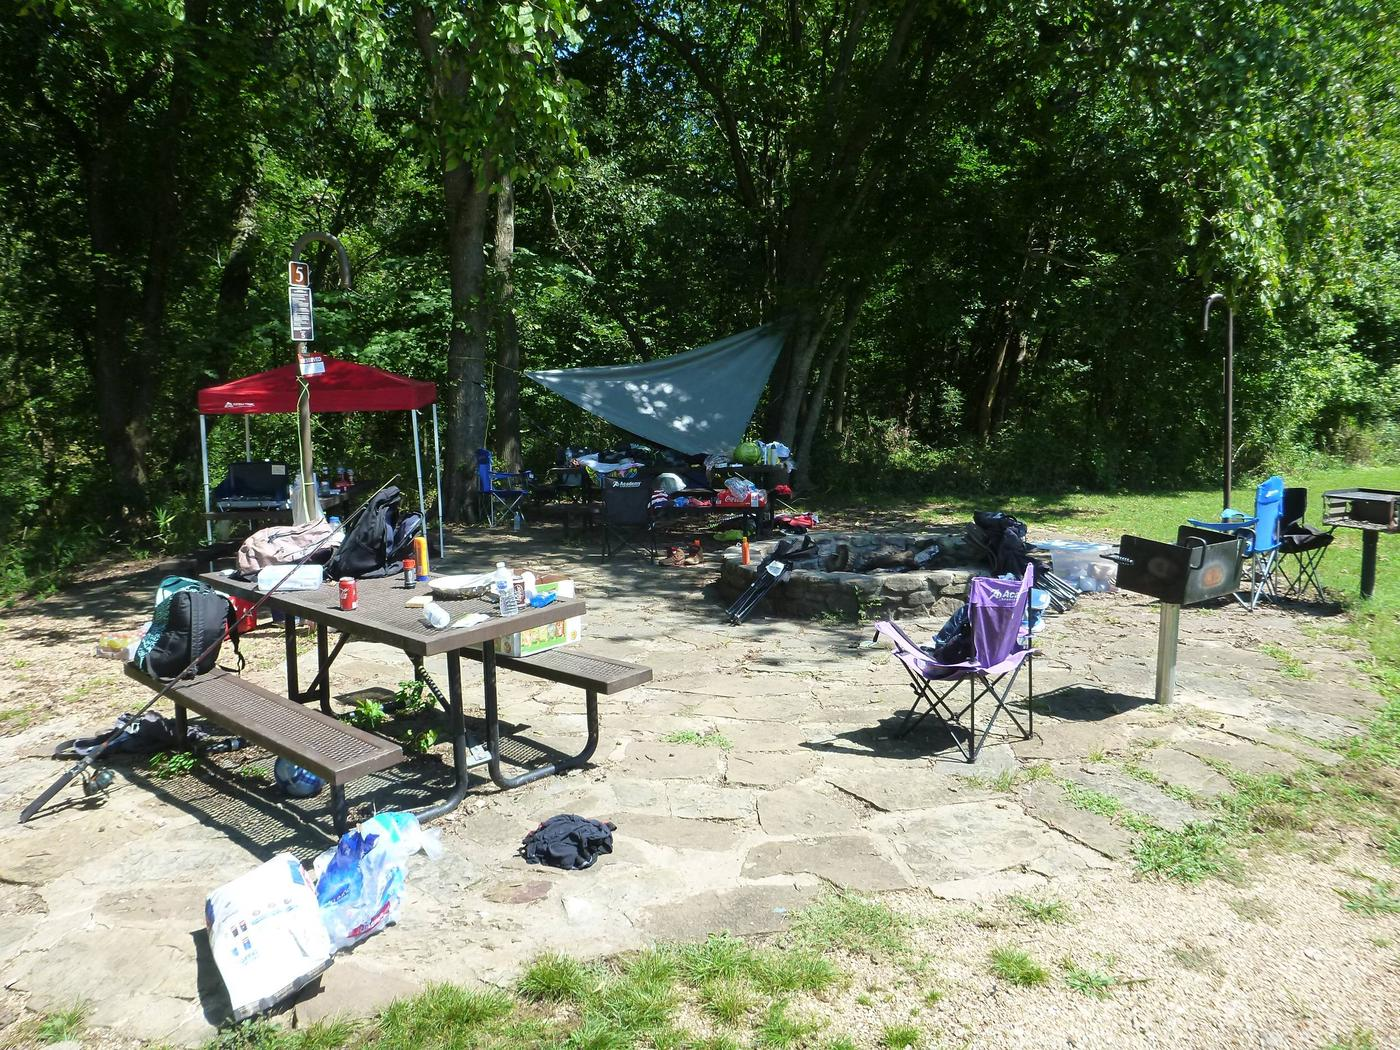 Tyler Bend Group Site 5-4Group Site #5, Three picnic tables; two lantern holders; two charcoal cooking stands; one large fire pit.